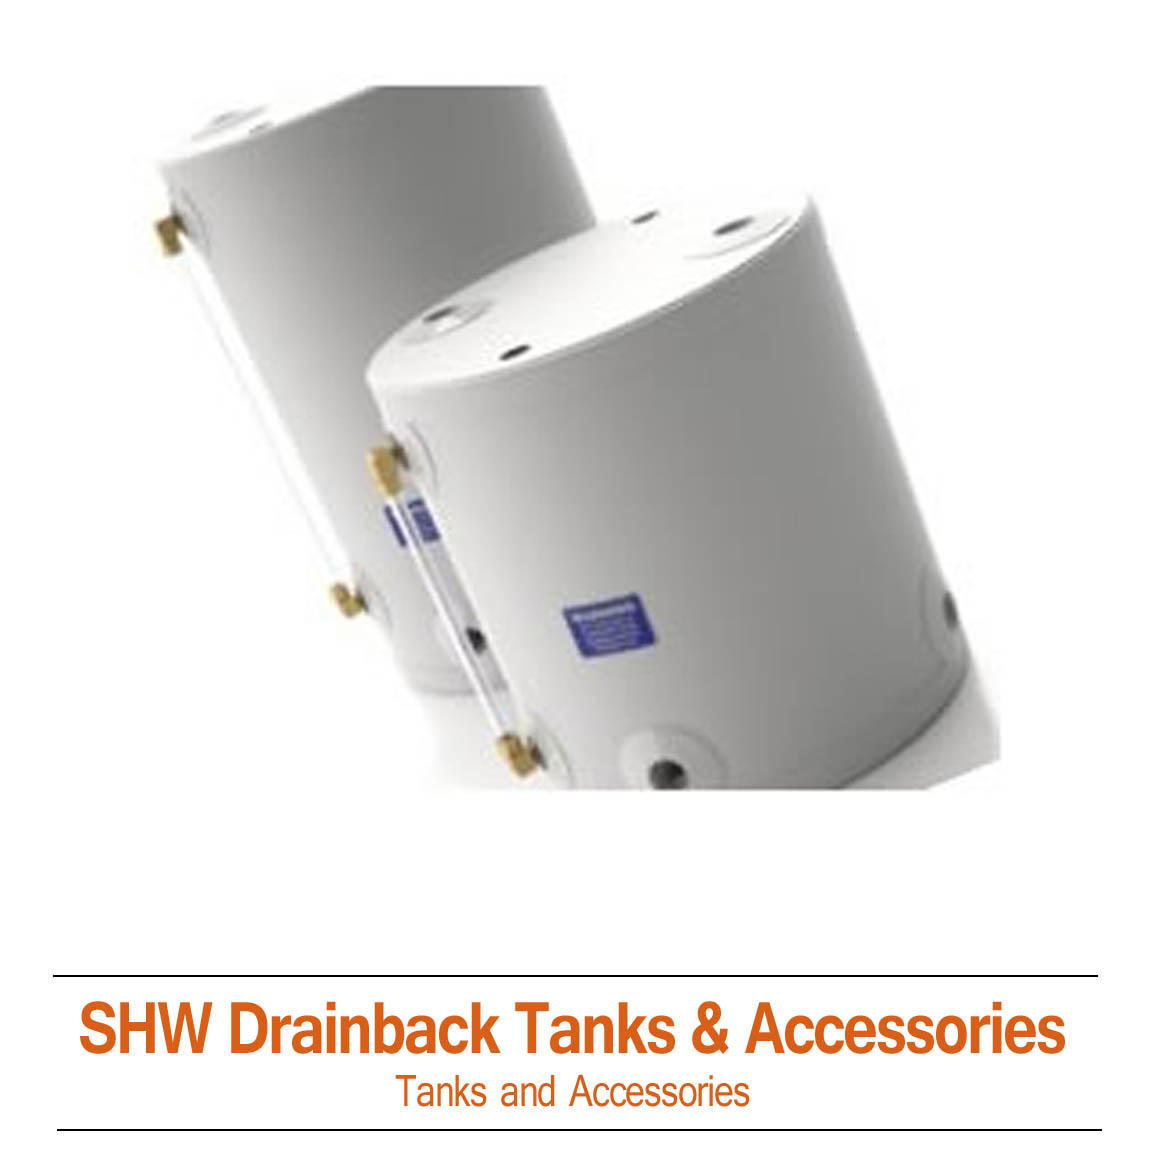 Solar Hot Water Drainback Tanks and Accessories